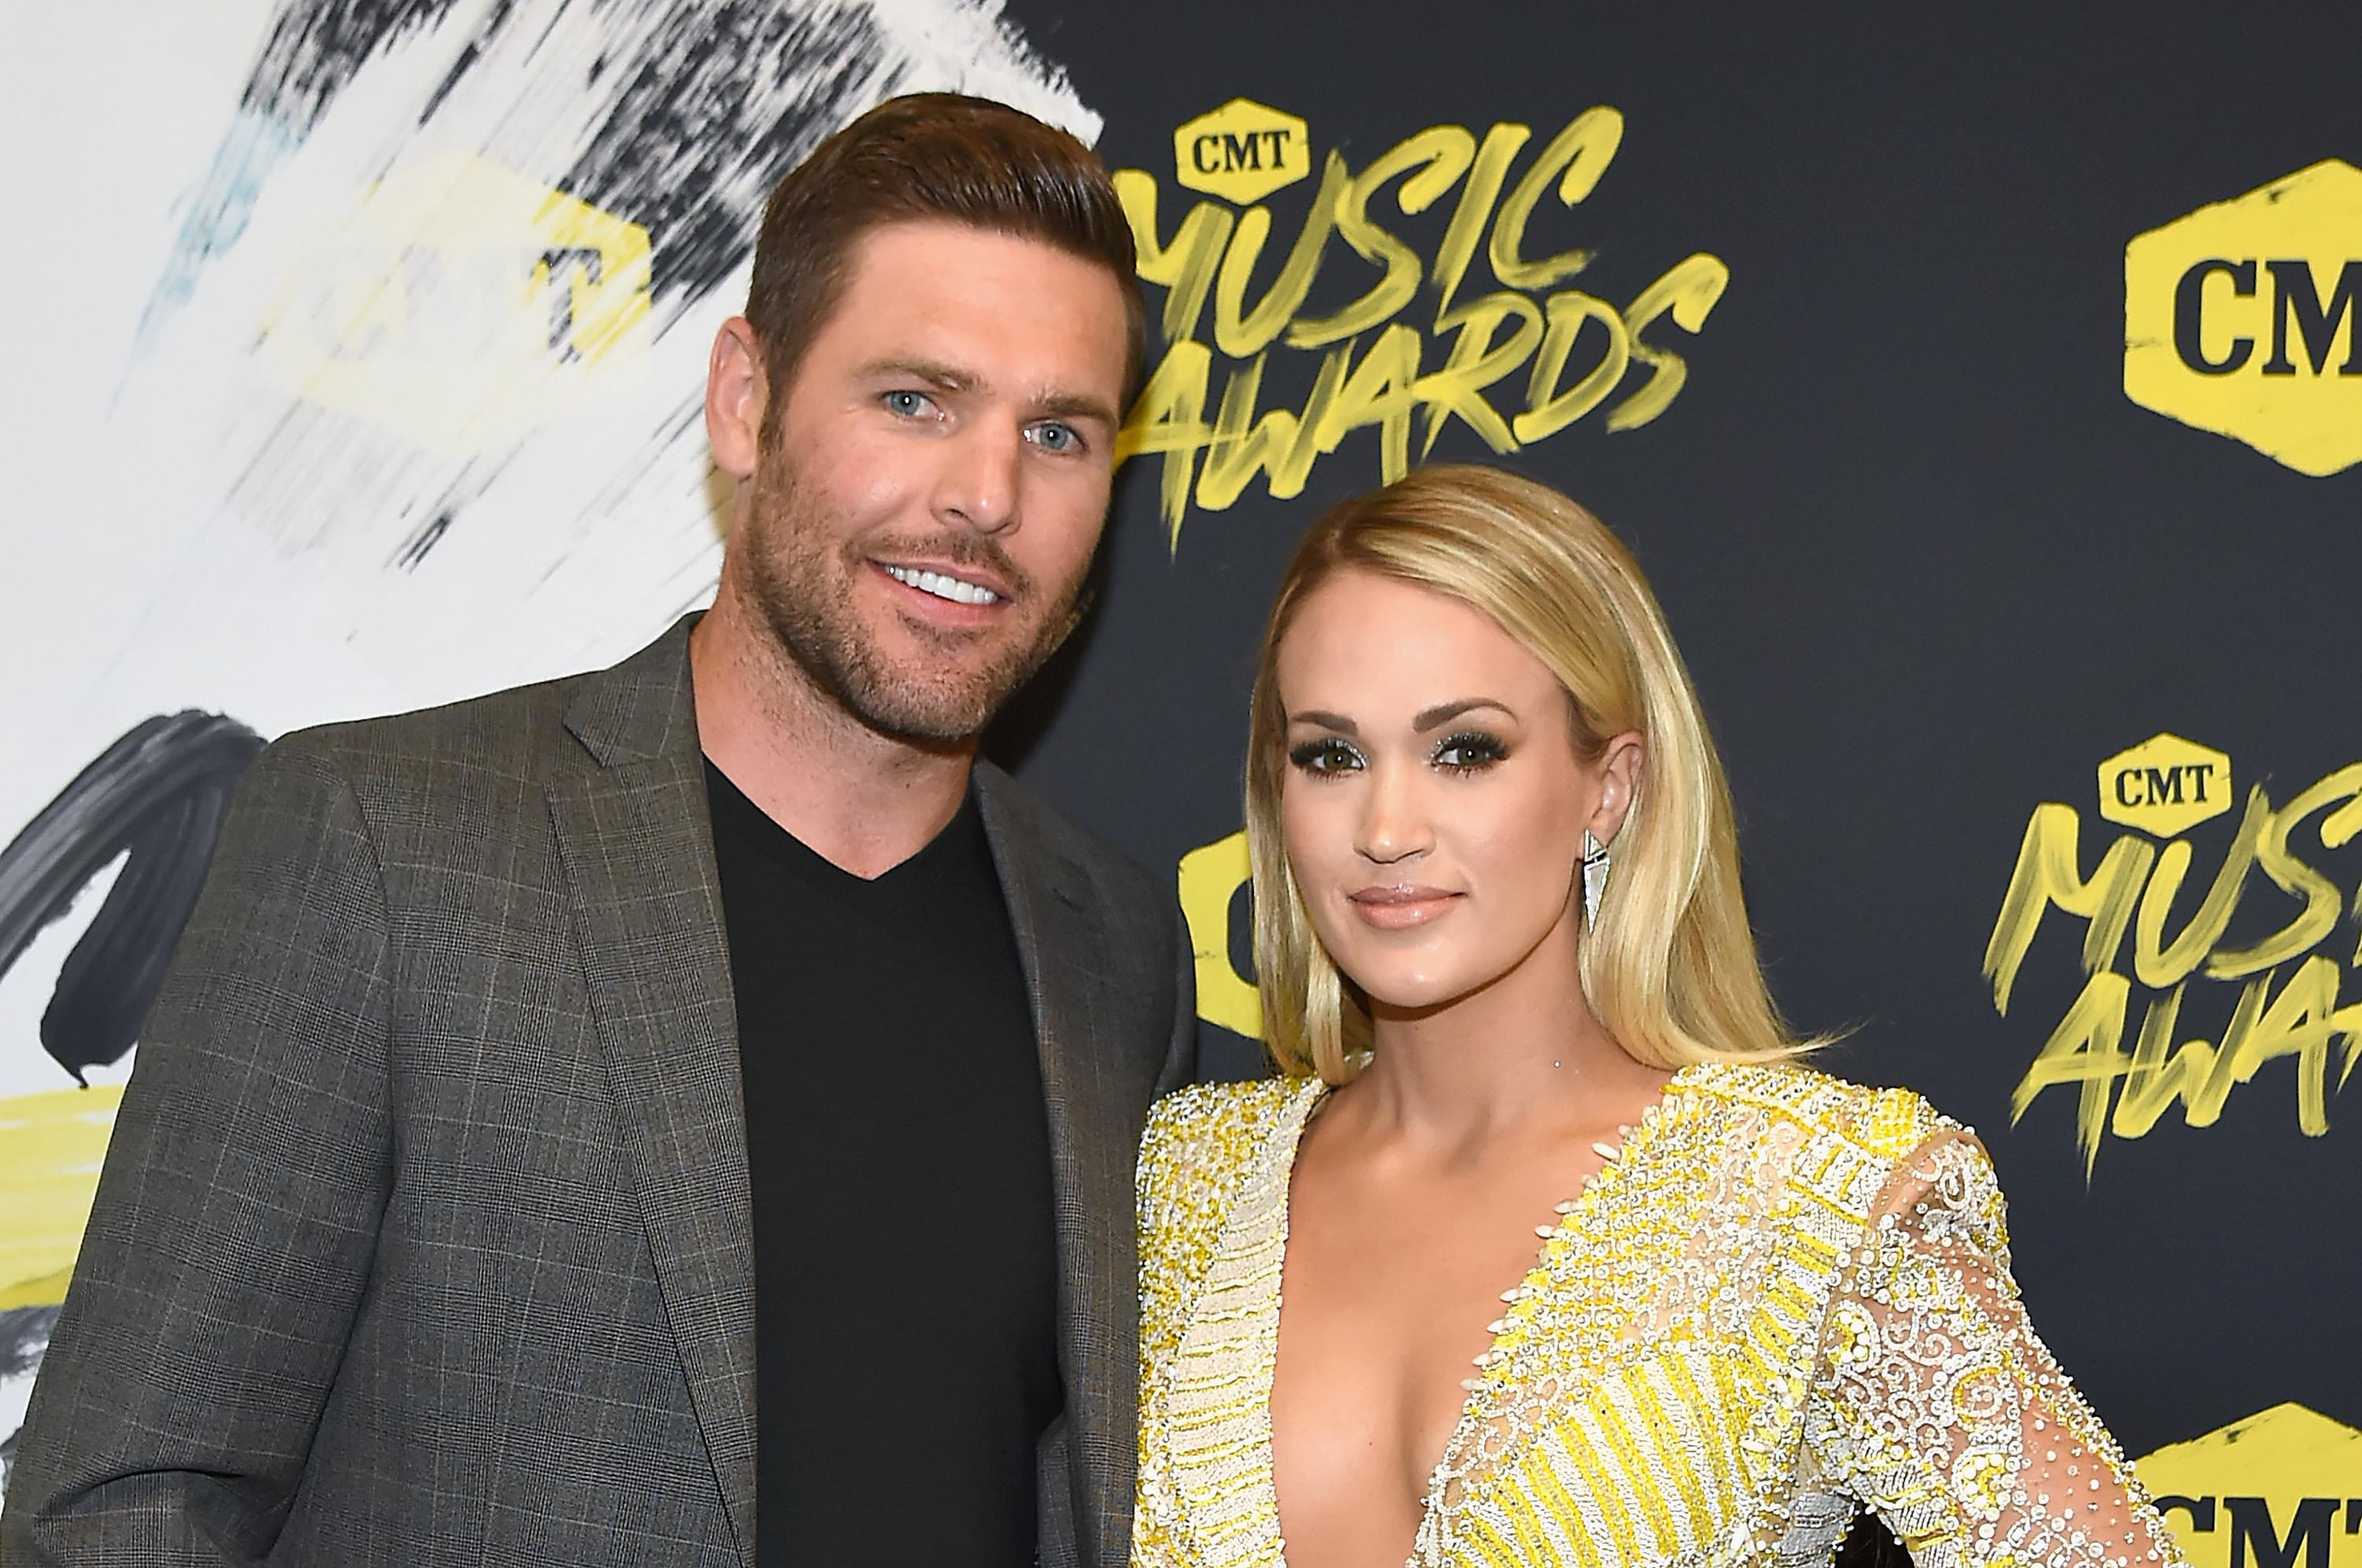 Carrie Underwood And Mike Fisher Officially Have A New Family Member